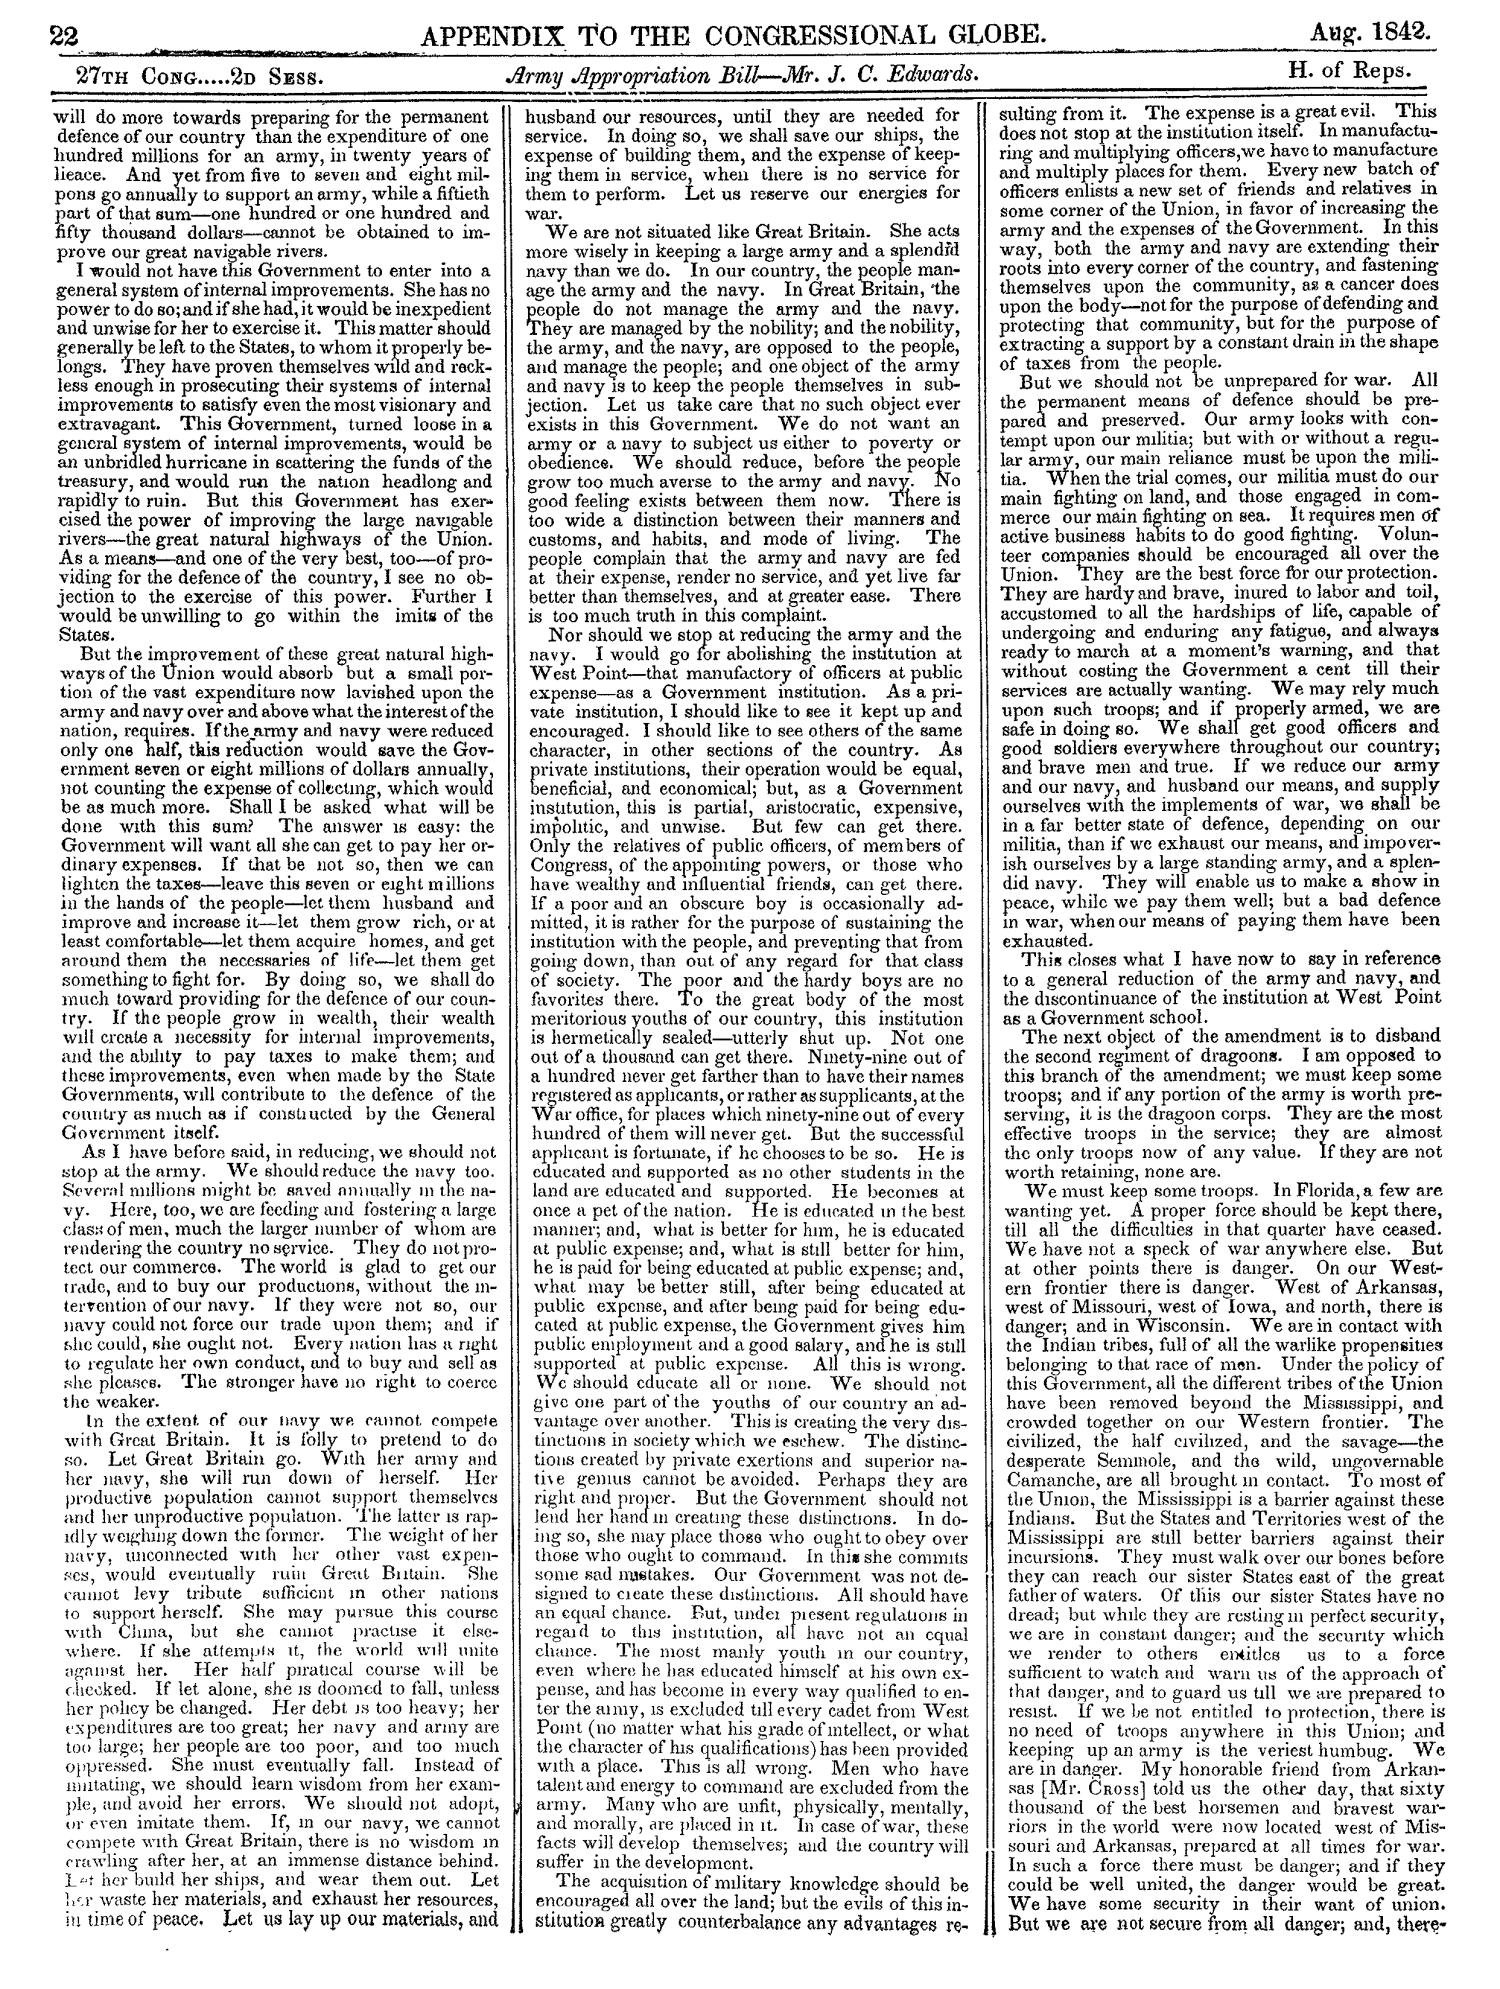 The Congressional Globe, Volume 13, Part 2: Twenty-Eighth Congress, First Session                                                                                                      22